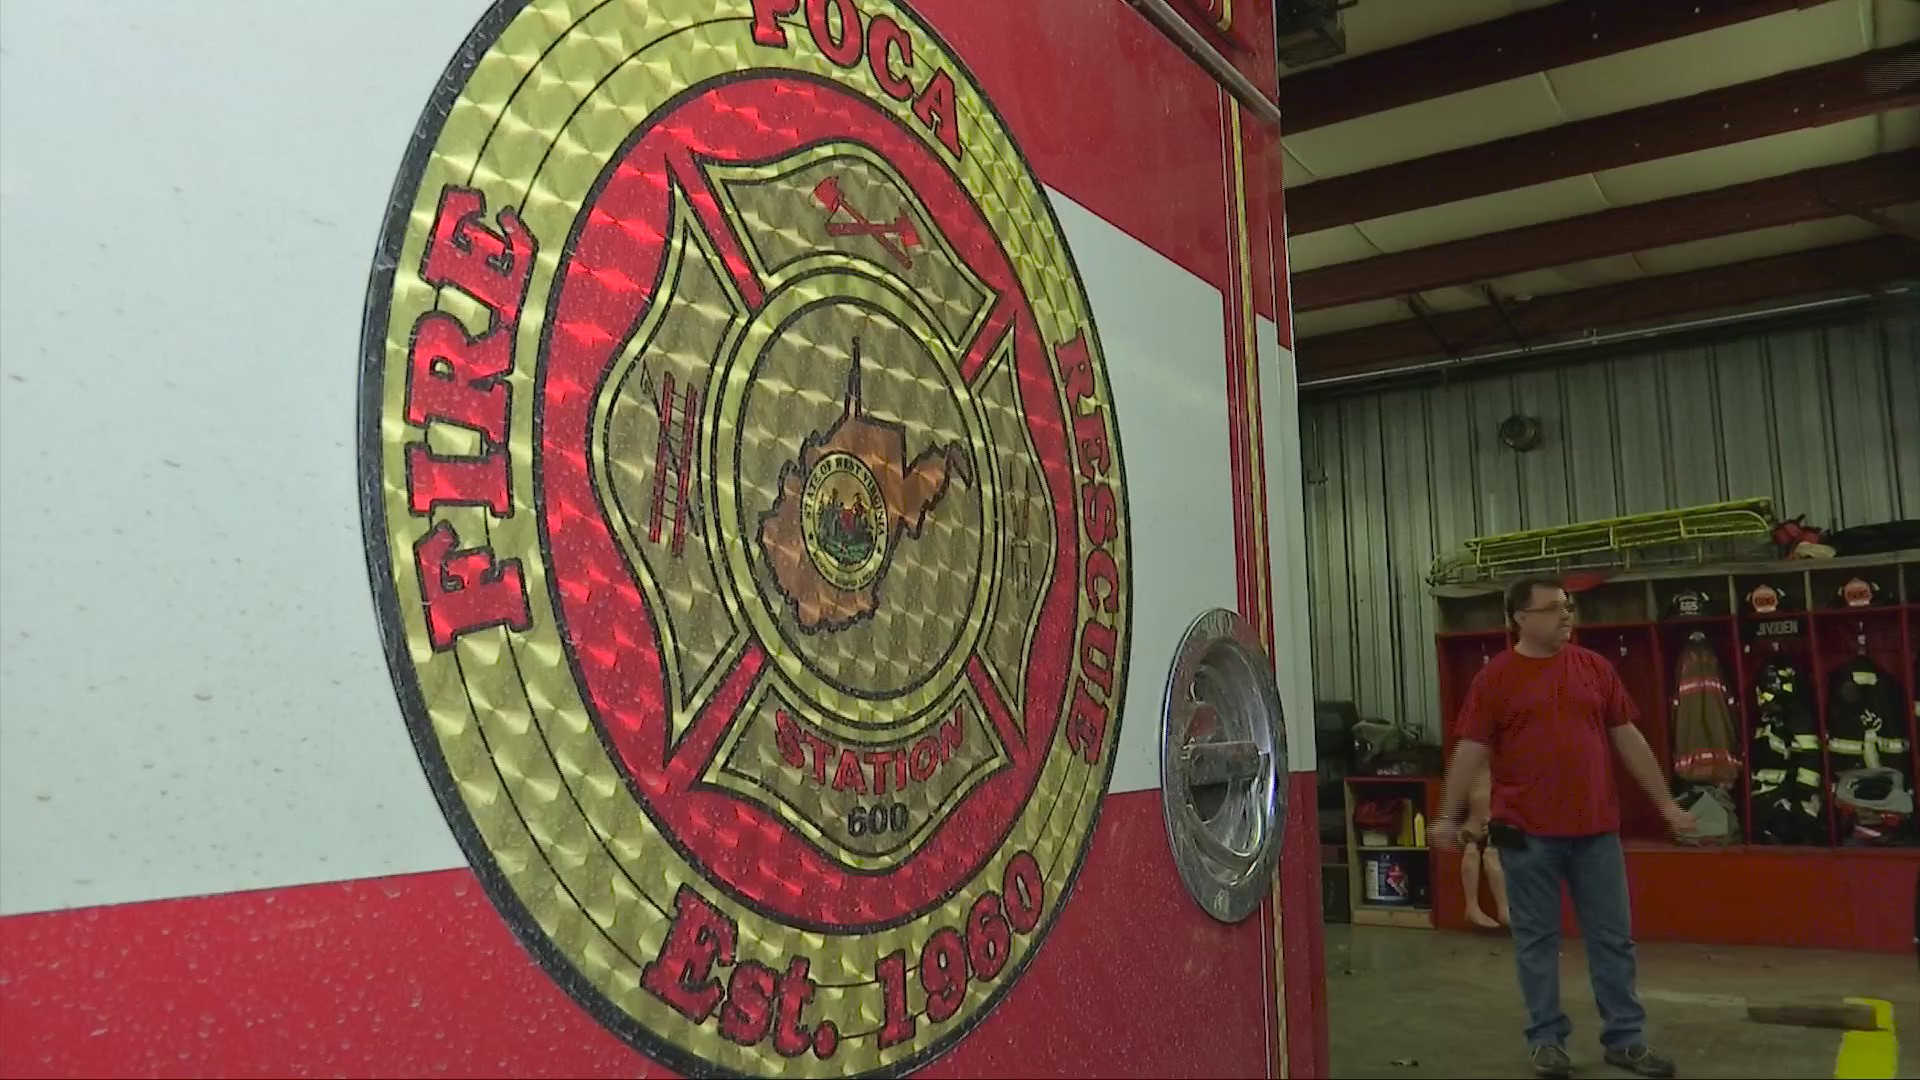 Shortage of Volunteer Fire Fighters Creates Problems for Local Departments